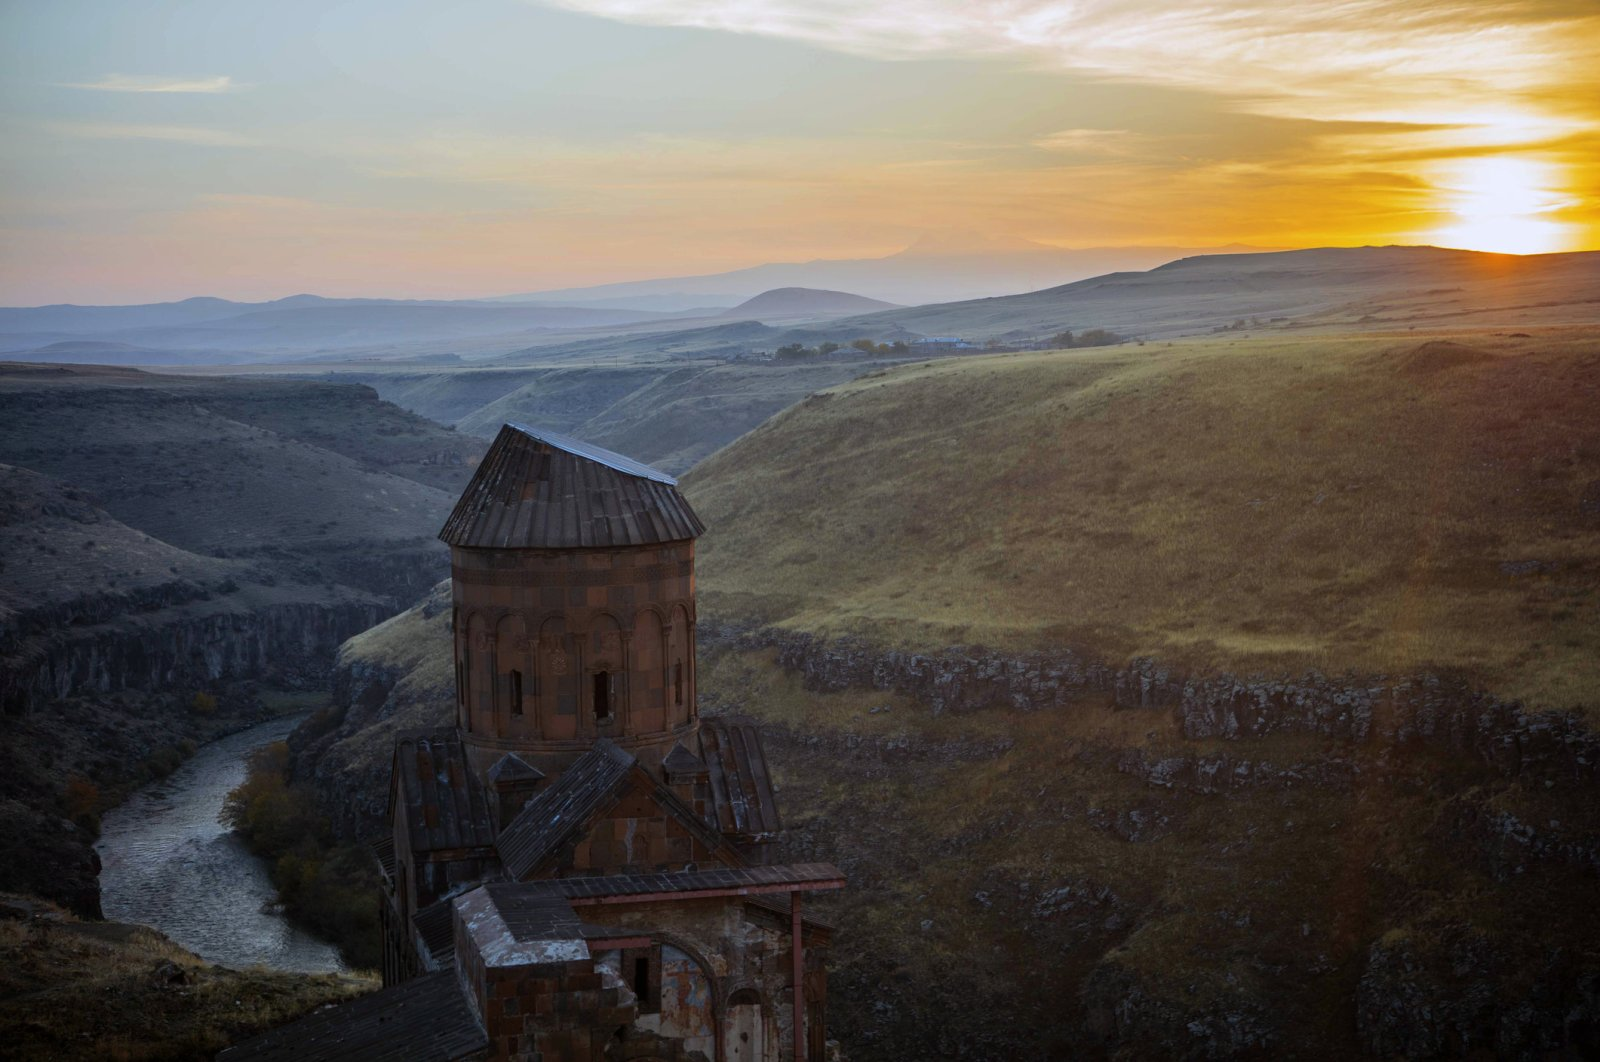 Ani - The Forgotten Ghost City That Was Once The 'City of 1,001 Churches'